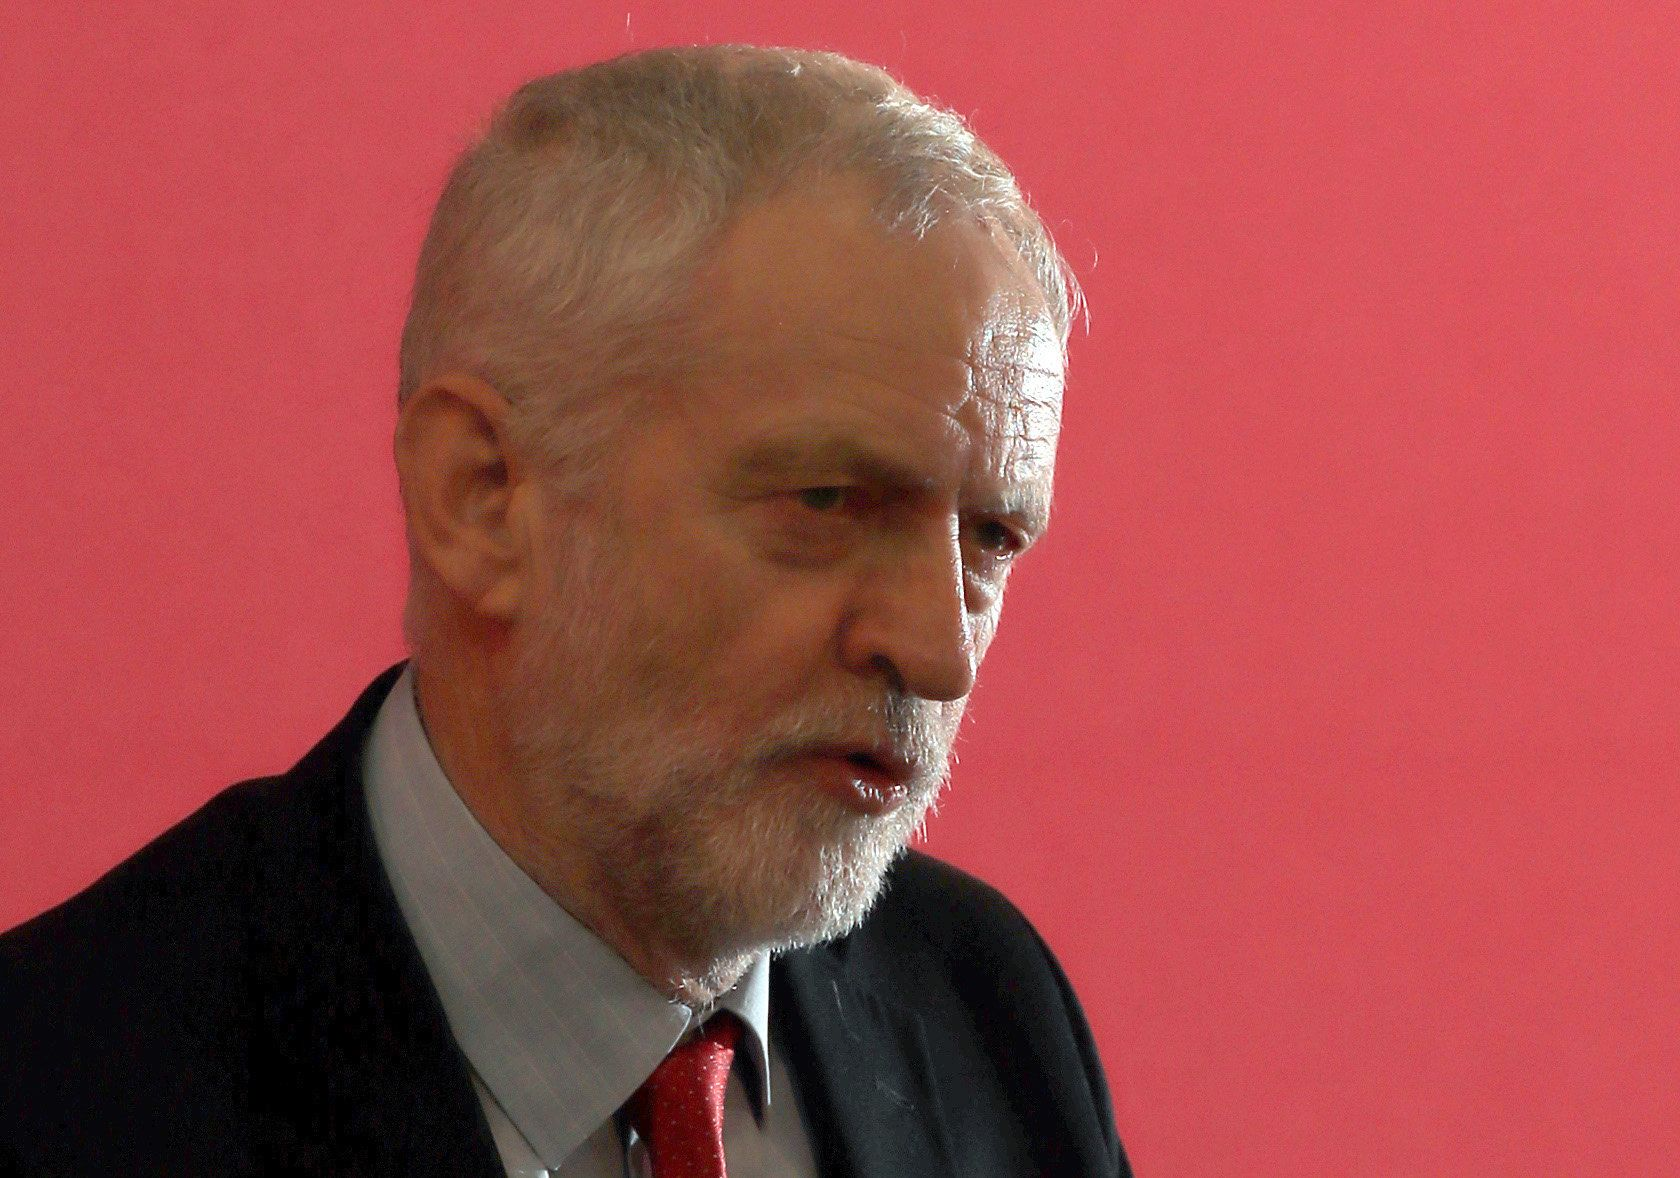 Jeremy Corbyn criticised for meeting radical group Jewdas amid anti-Semitism row